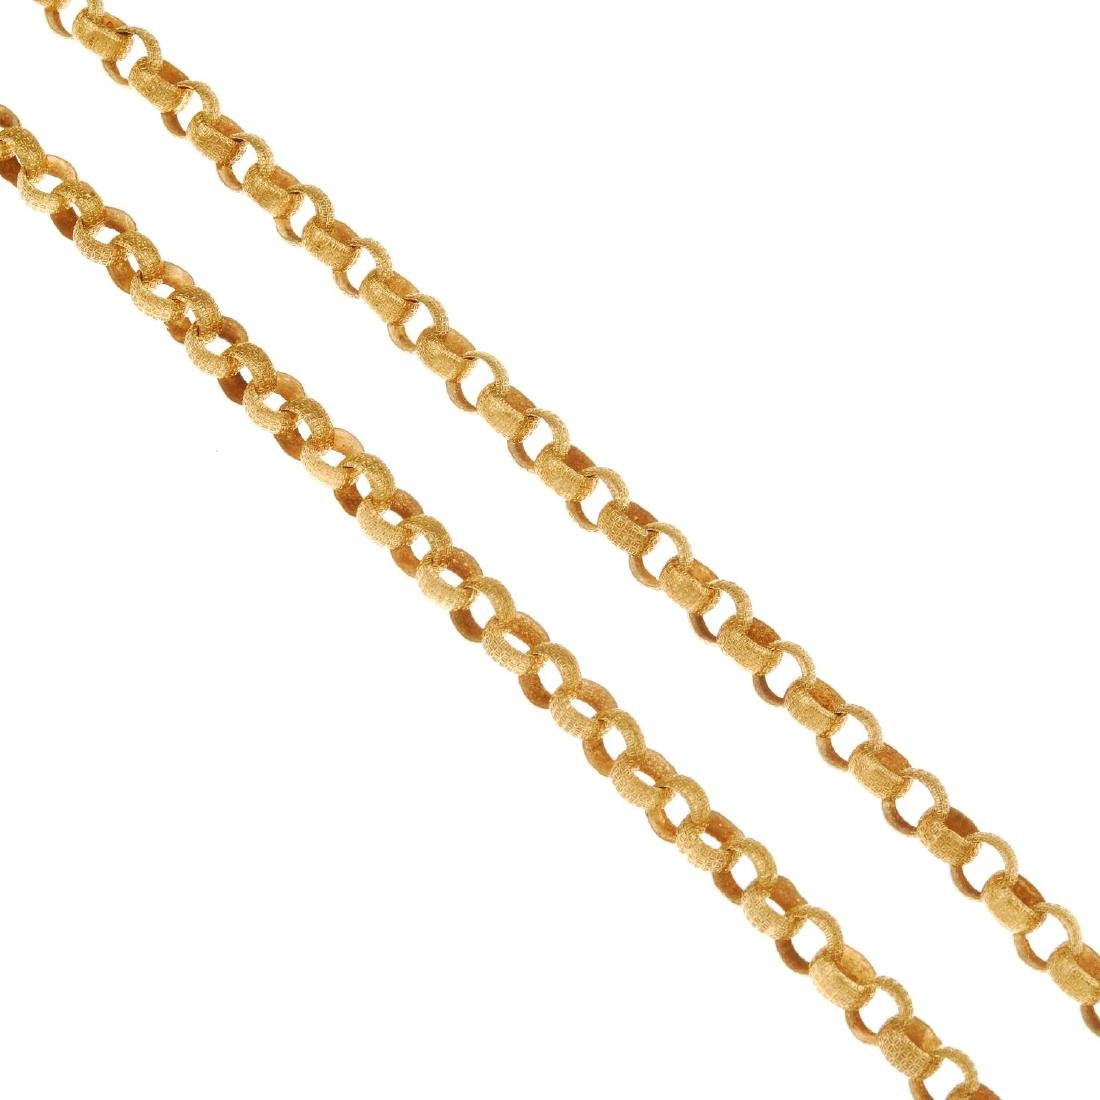 A 9ct gold fancy belcher-link chain. Designed as a